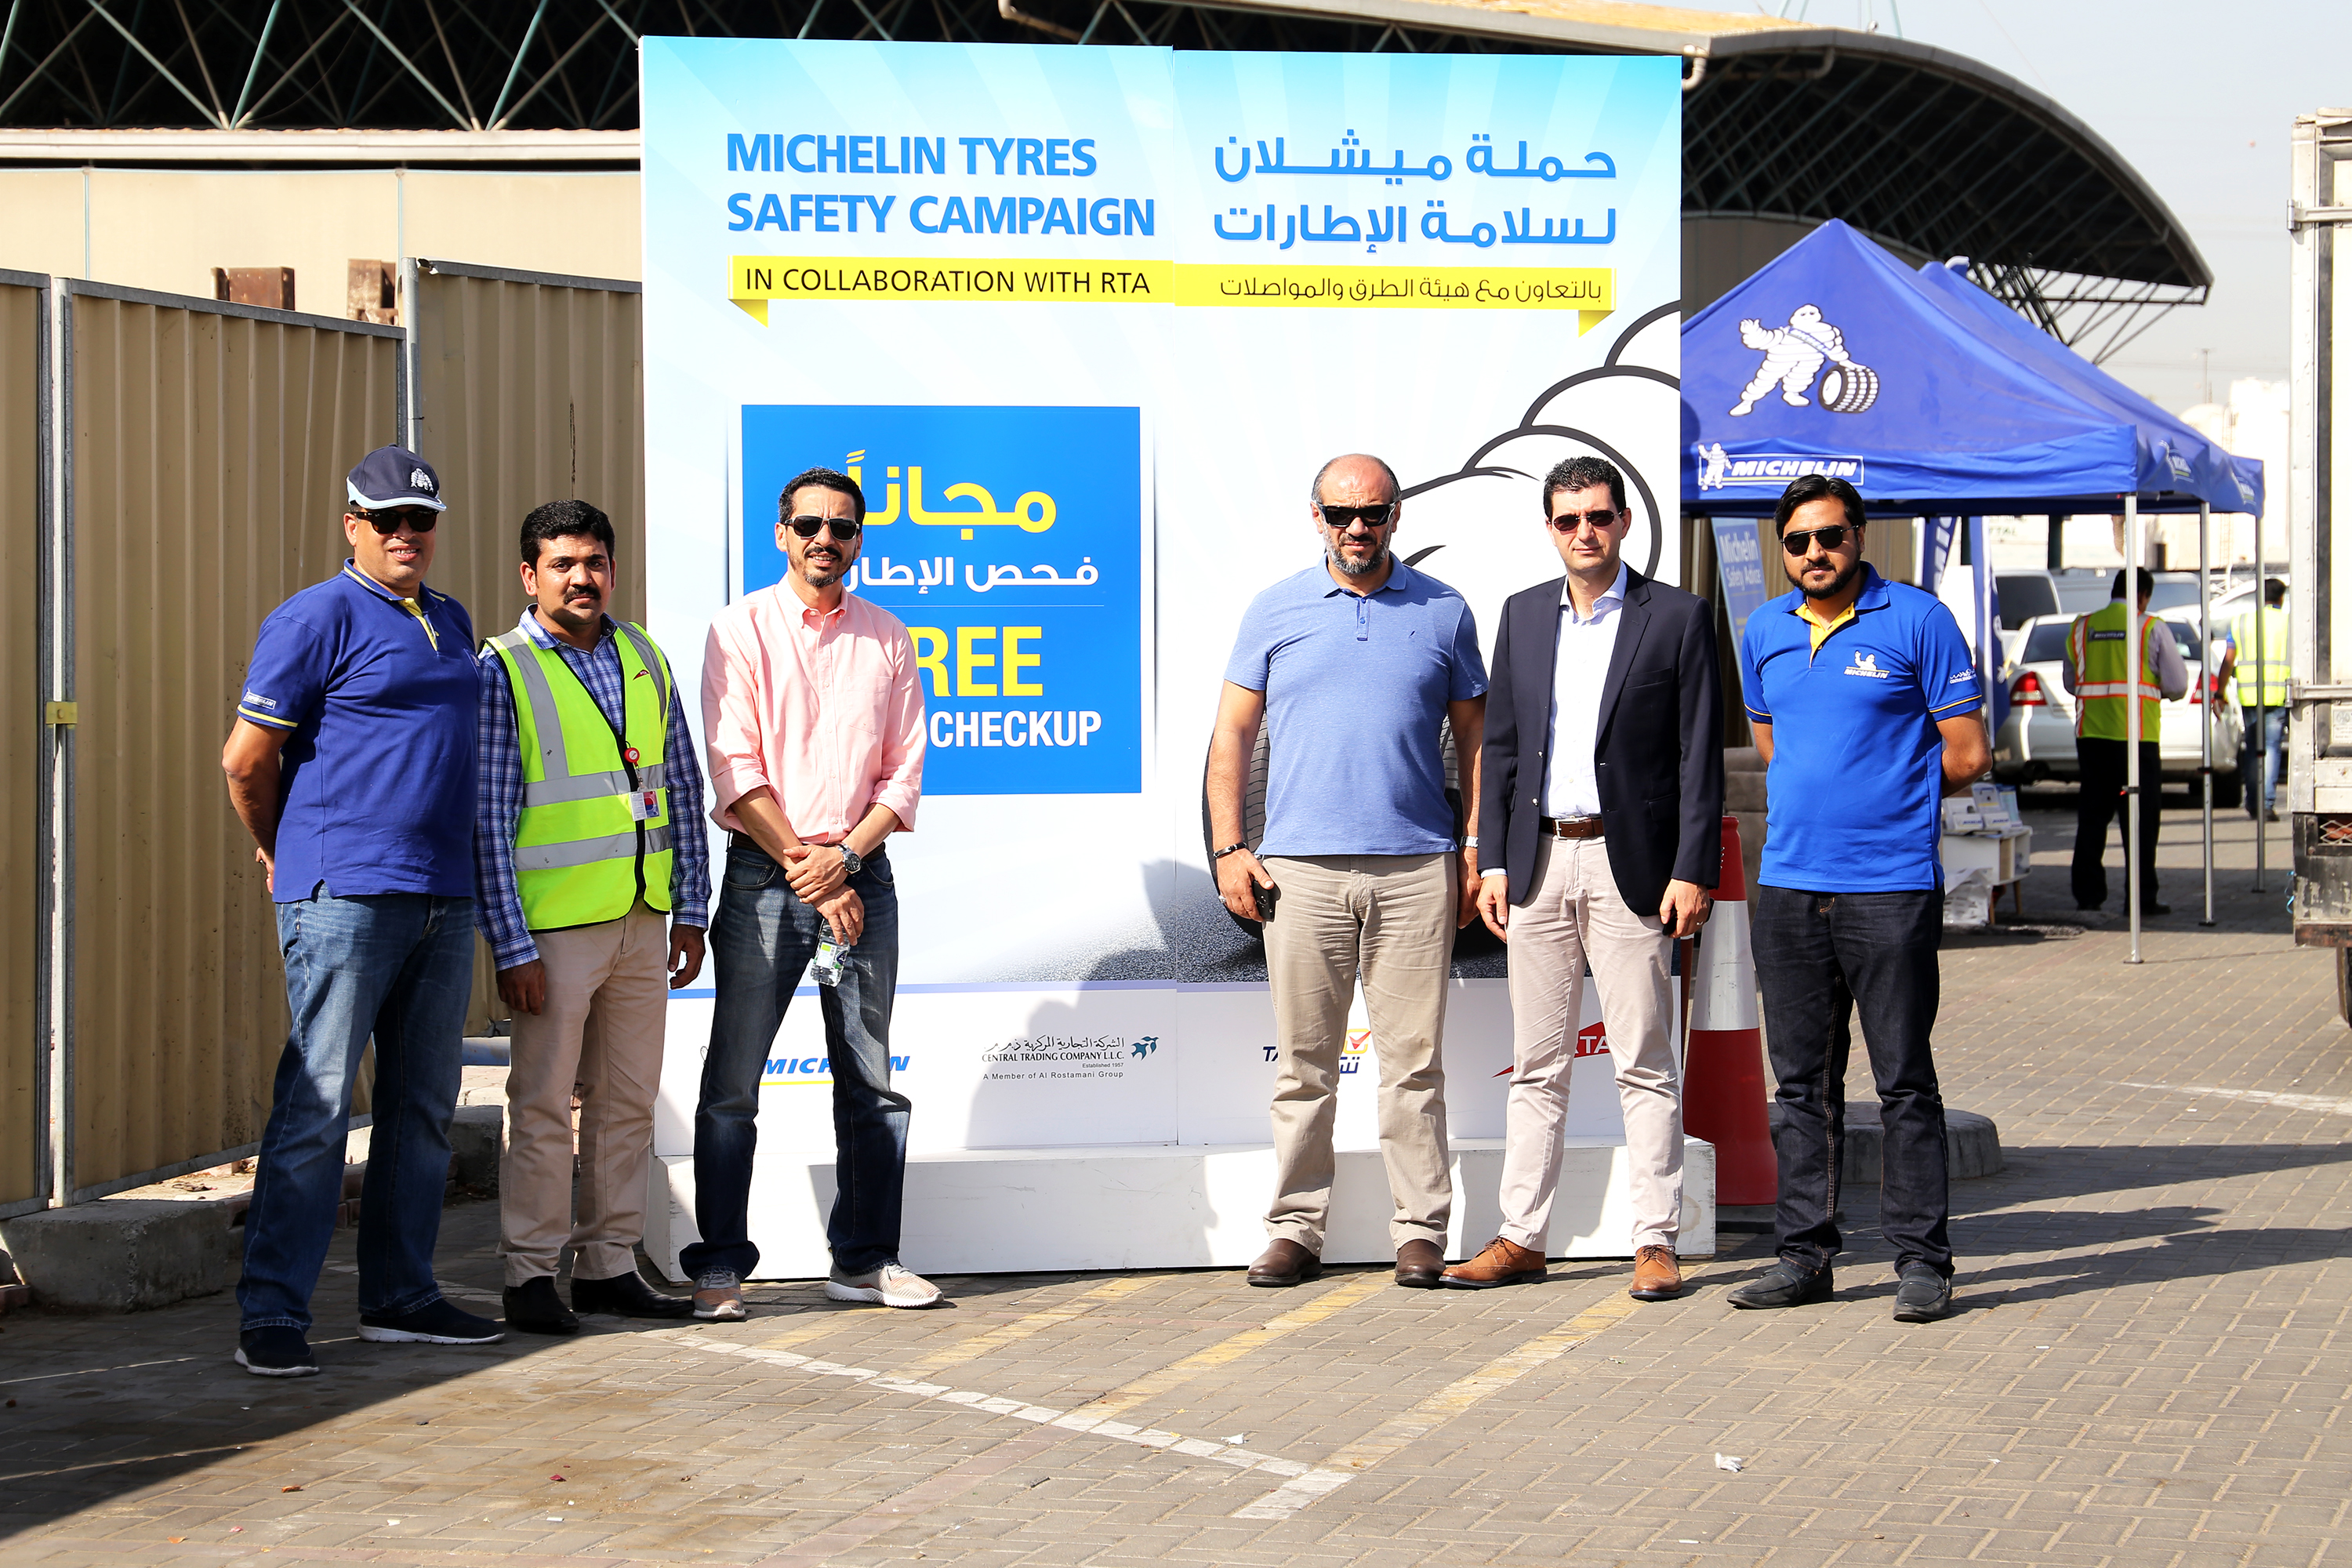 Michelin joins forces with Dubai Police and RTA to promote